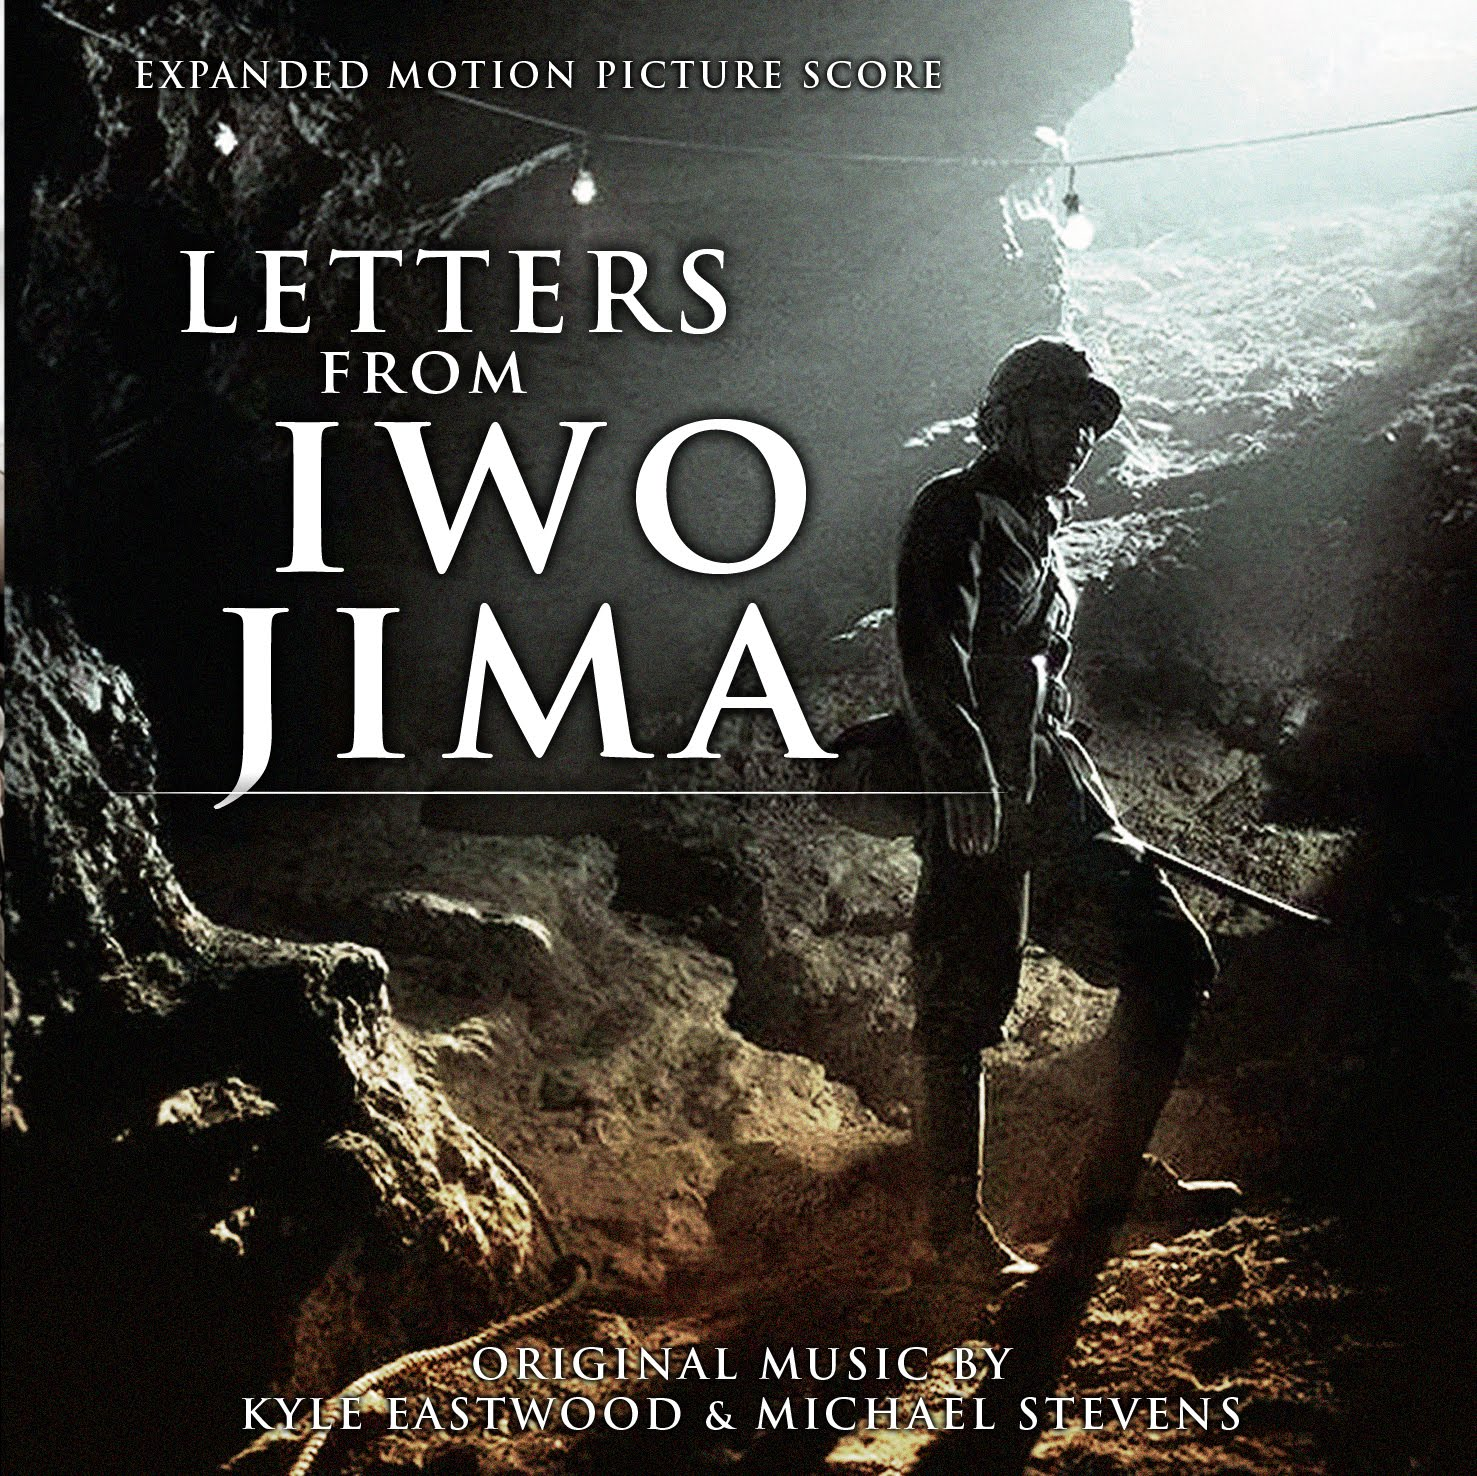 letters from iwo jima essay The paperback of the eastwood's iwo jima: critical engagements with flags of our fathers and letters from iwo jima by anne gjelsvik at barnes & noble.